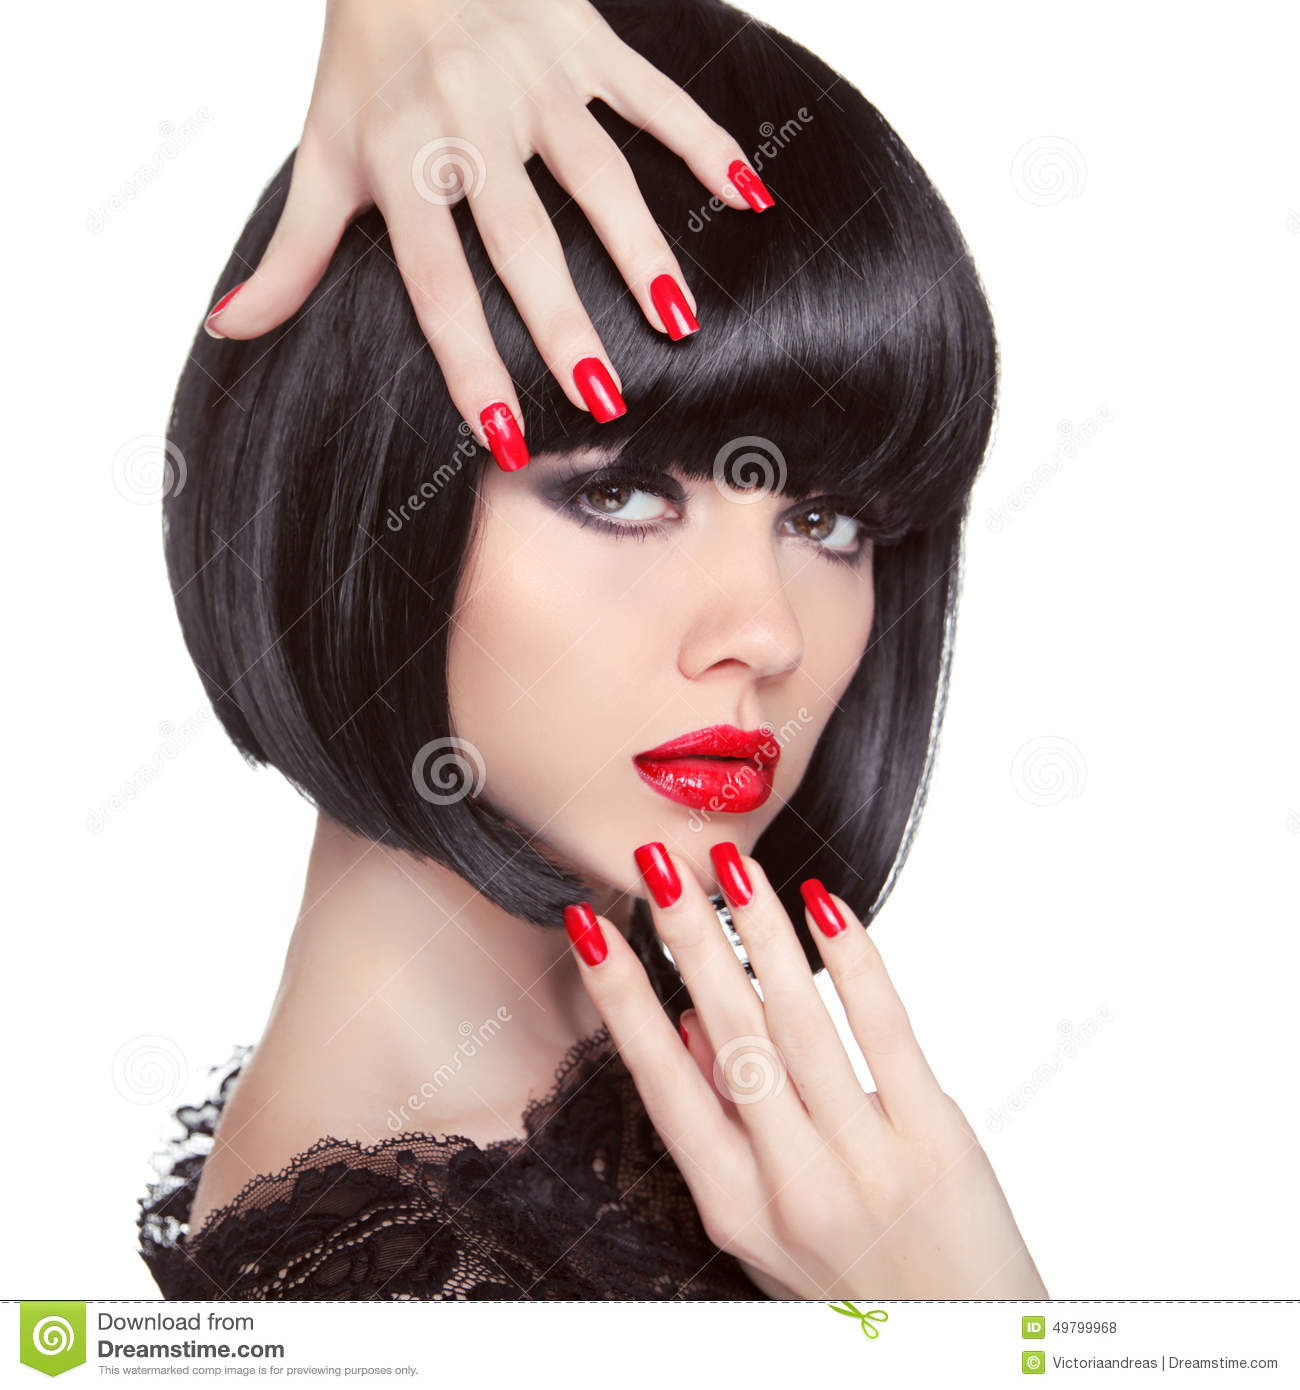 Beauty Fashion Brunette Model Portrait. Manicured Nails